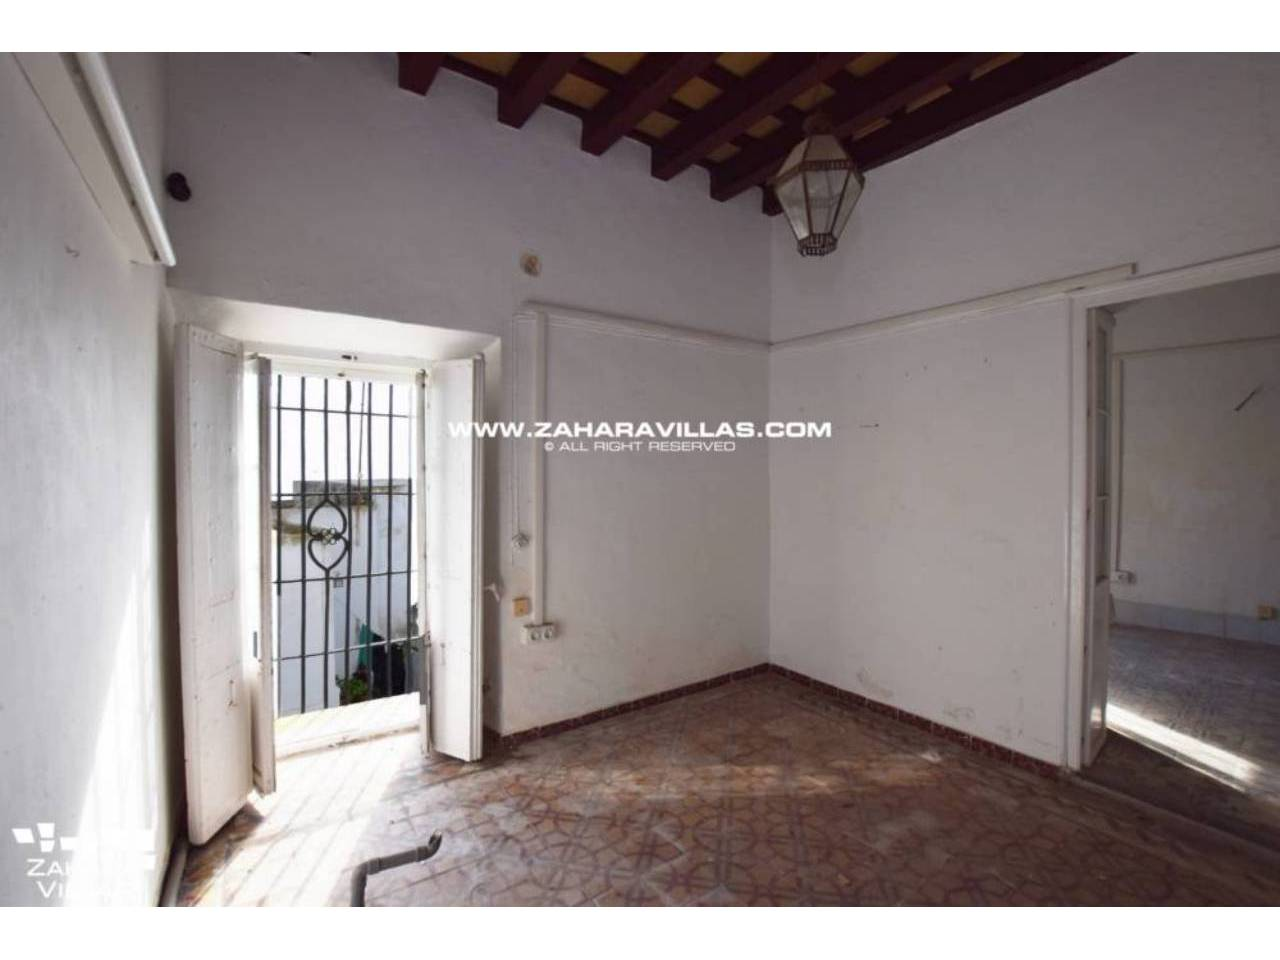 Imagen 5 de Fabulous house, ripe for refurbishment, in the centre of Vejer de la Frontera.